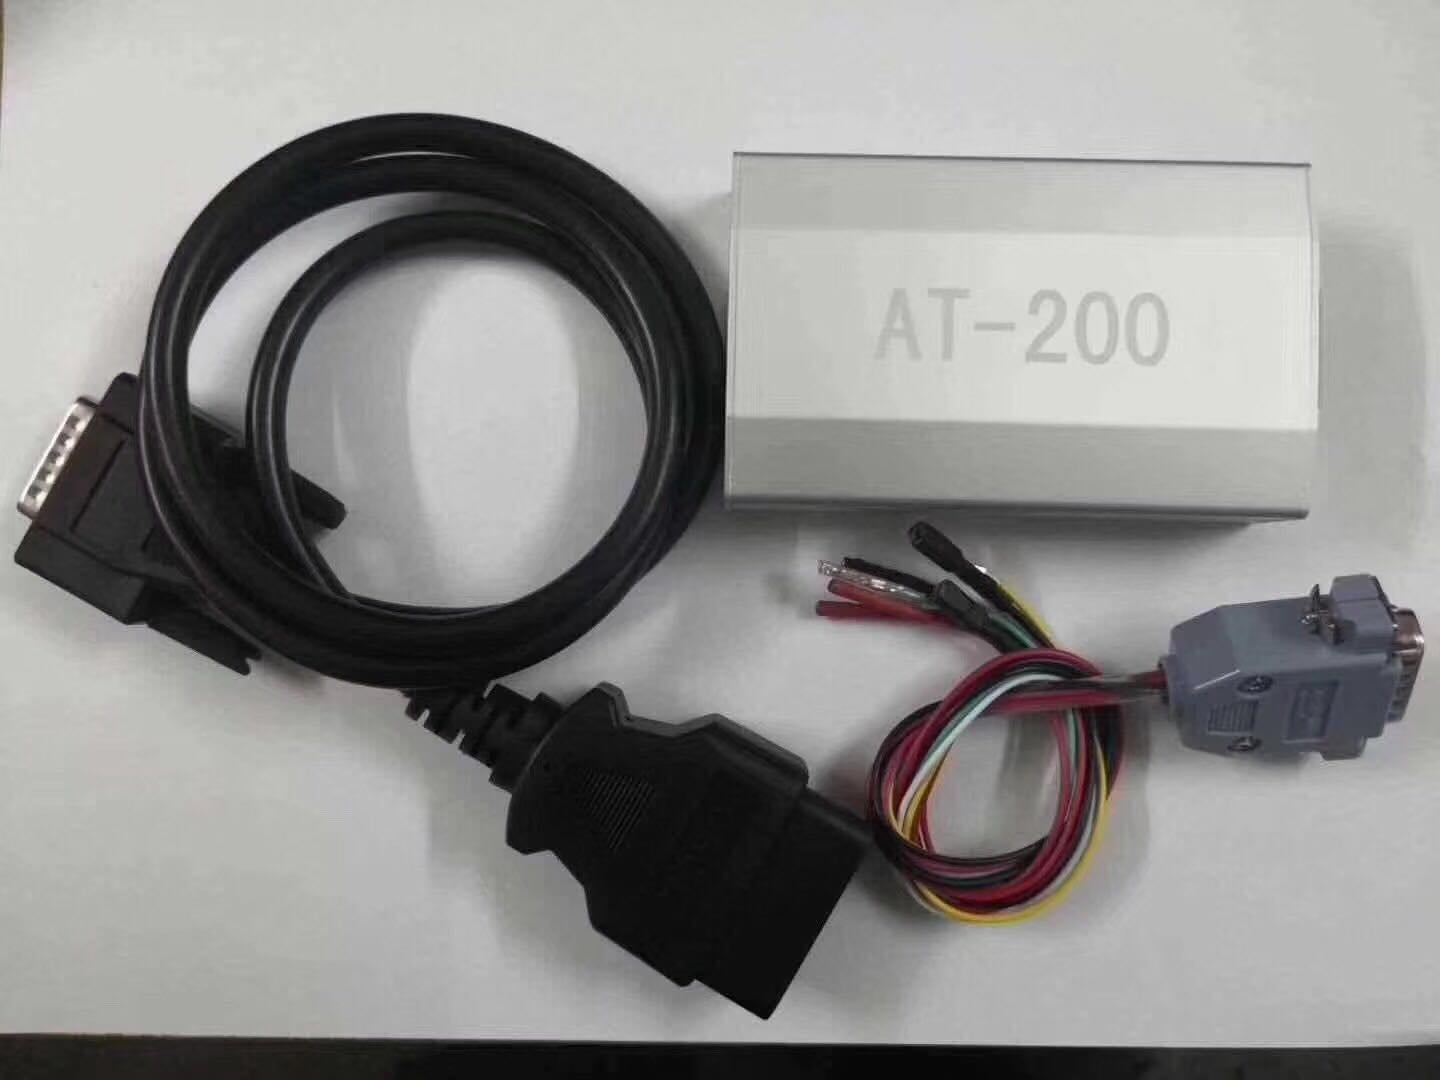 AT-200 ECU Programmer IMMO Read ISN By OBD Support for BMW ECU Data  Reading/Writing/Clone